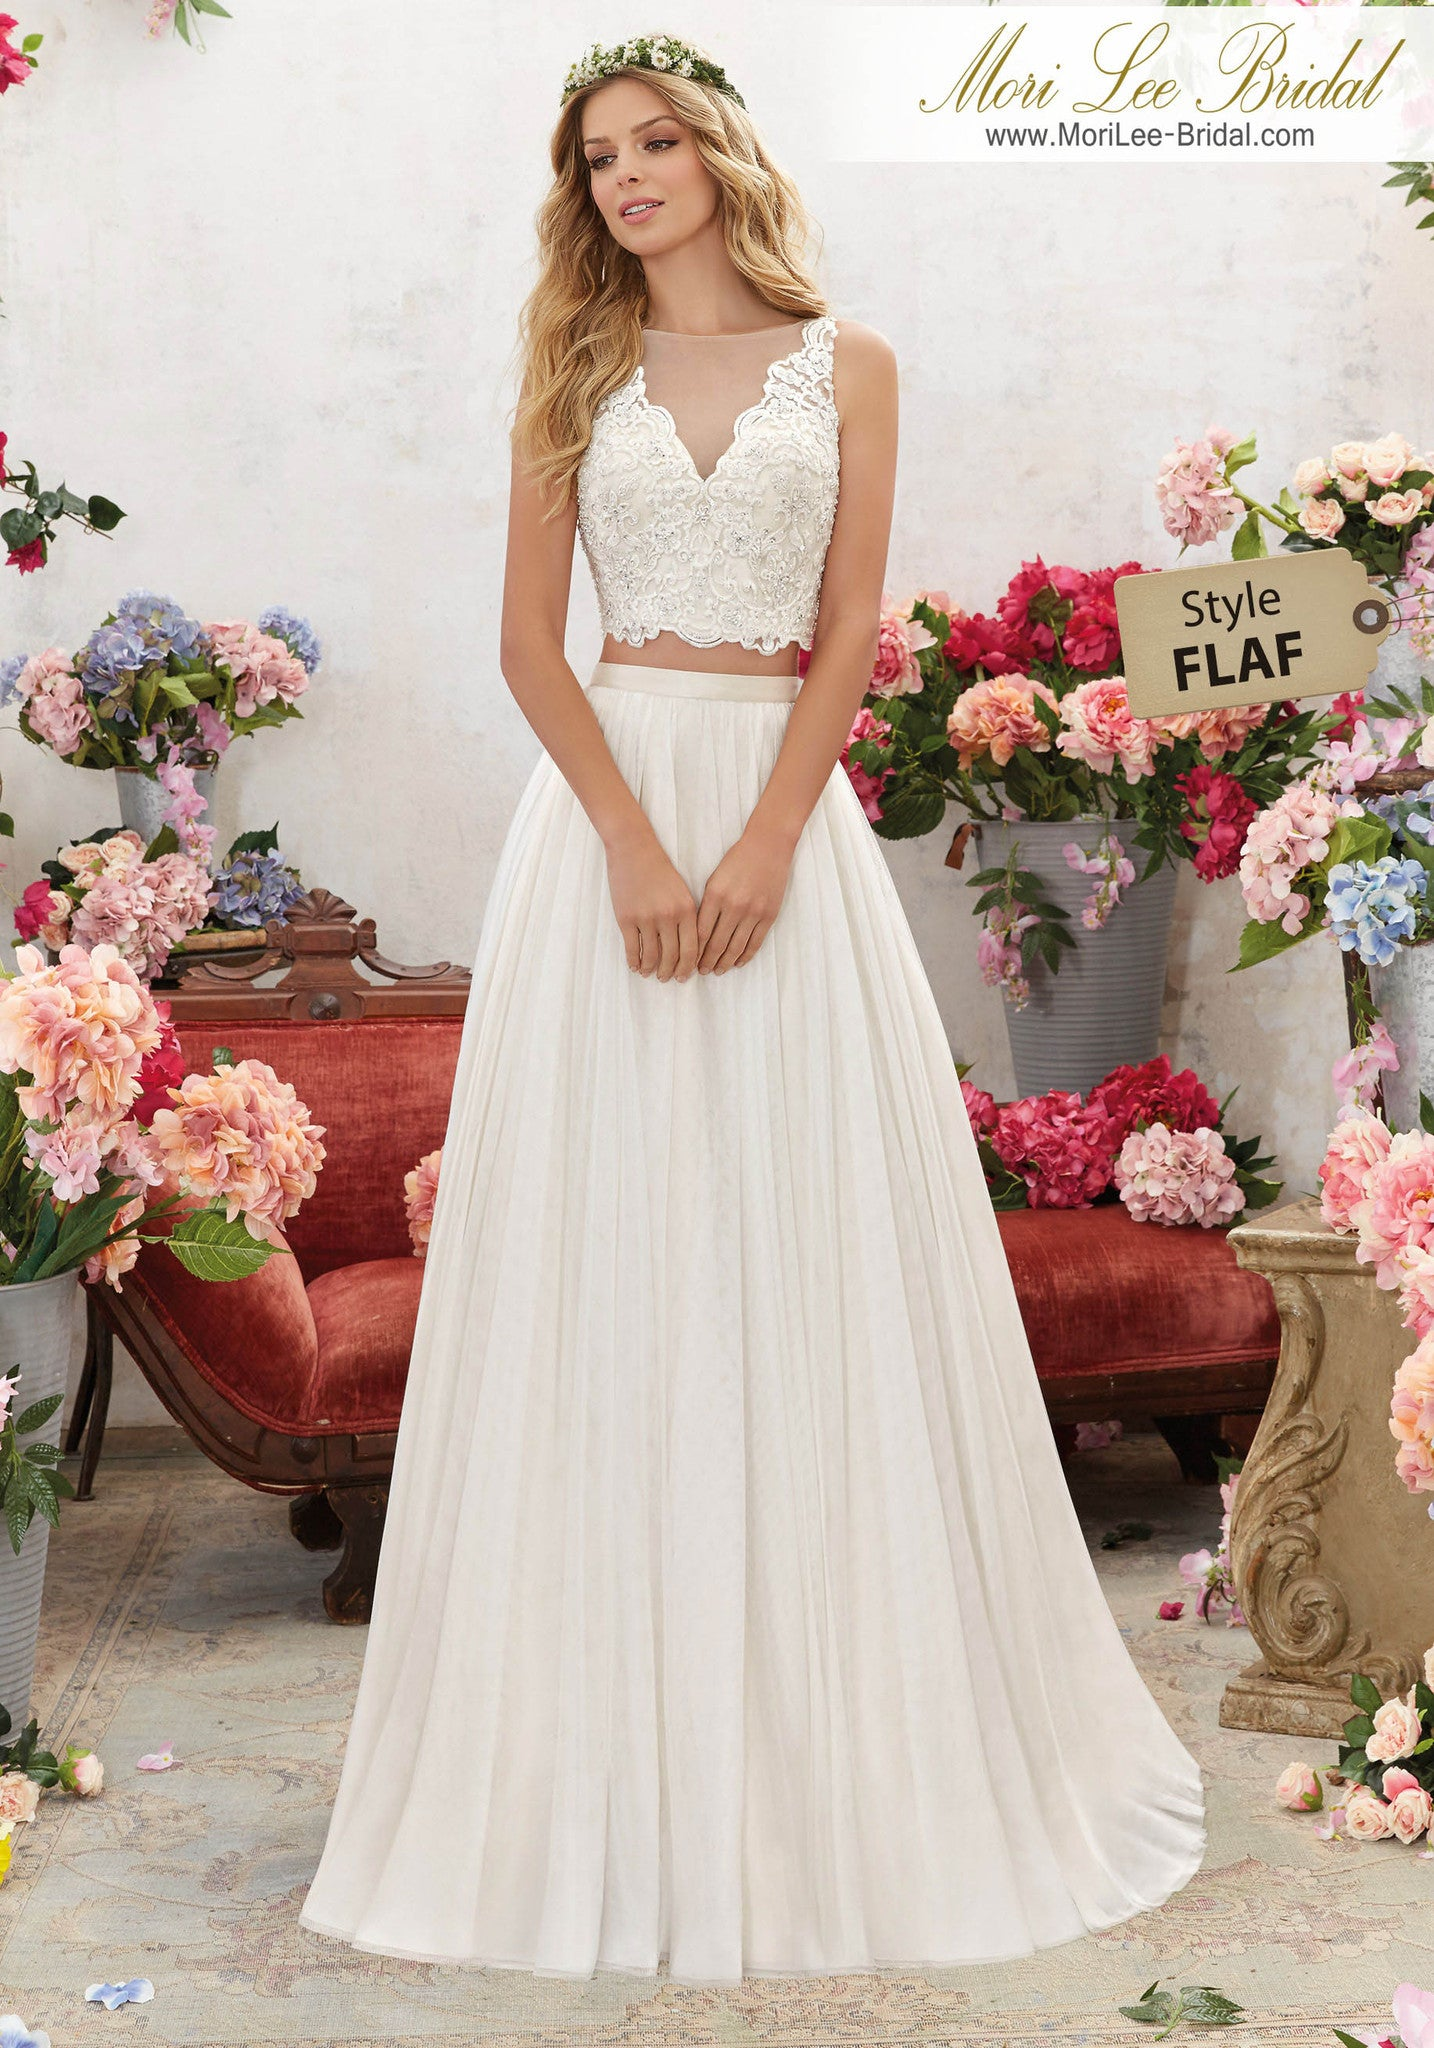 FLAF - Mori Lee Bridal